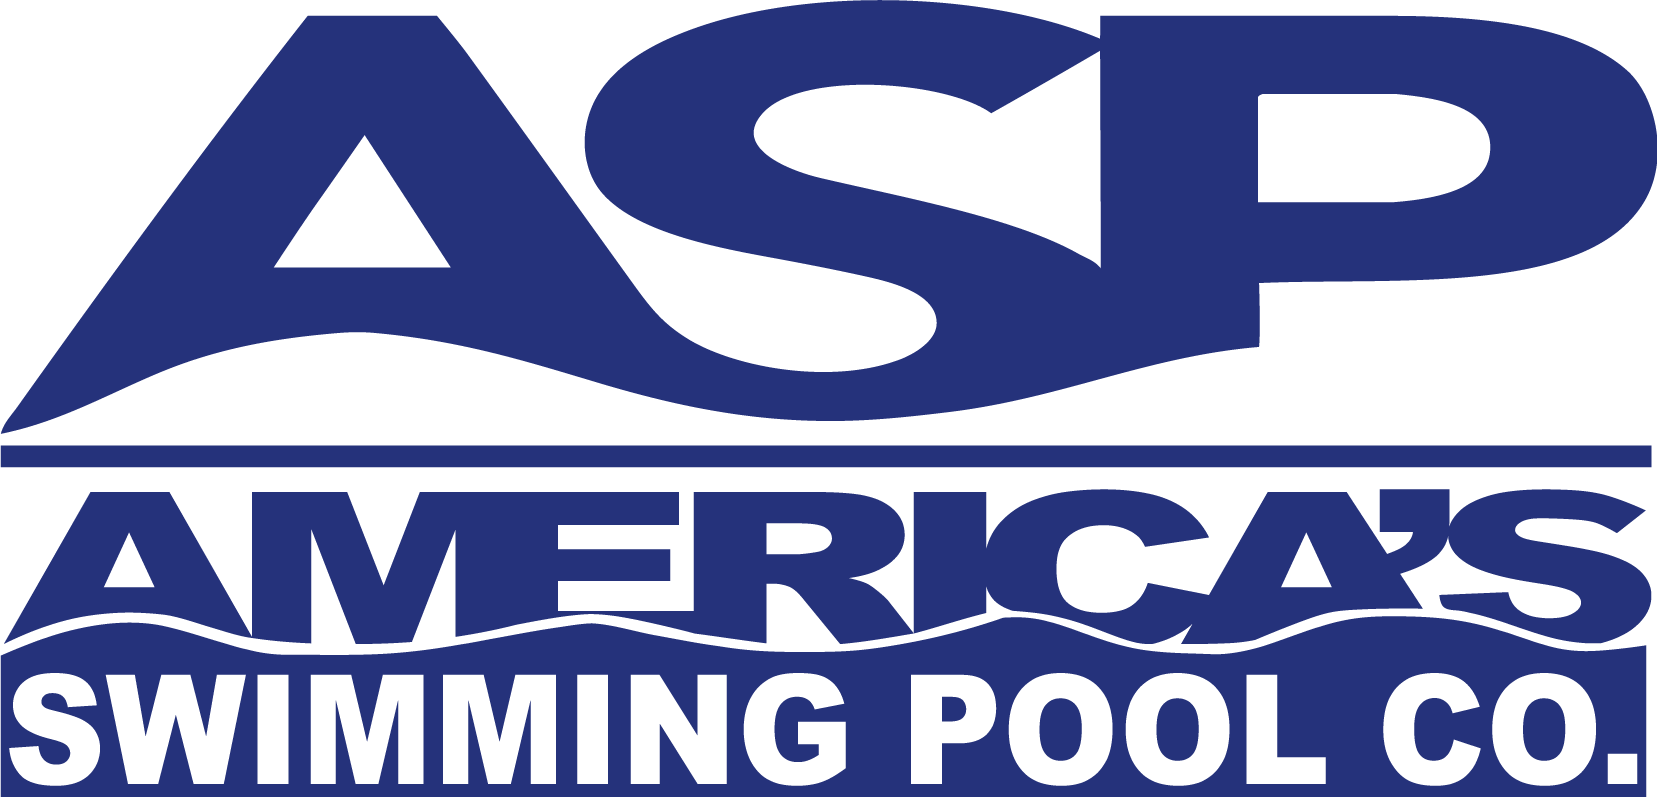 Asp Swimming Pool Service Franchise Under New Management In Corpus Christi Texas